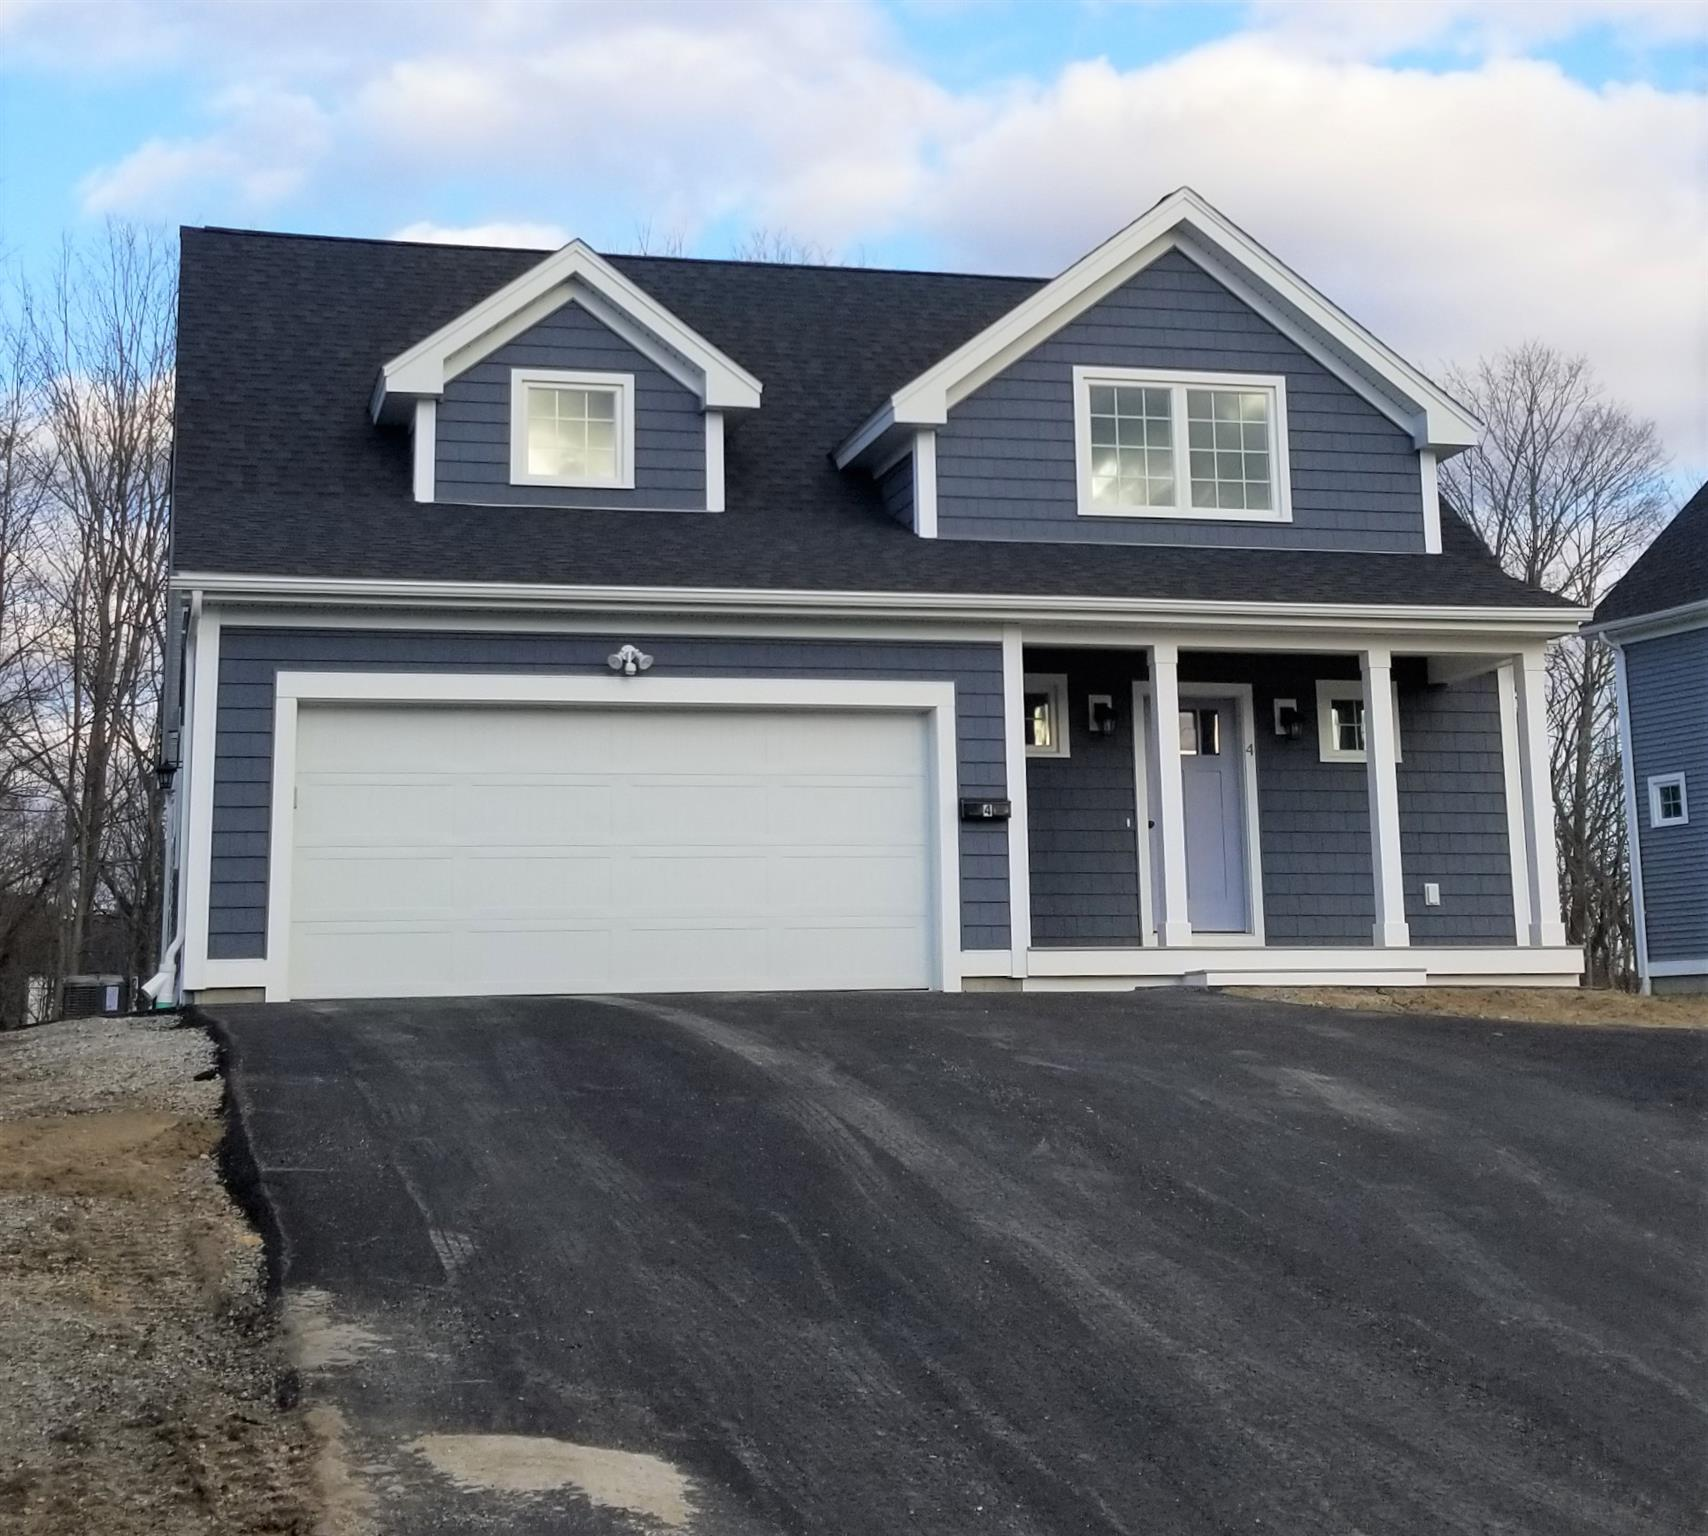 Photo of Lot 2 Lincoln Avenue Newmarket NH 03857